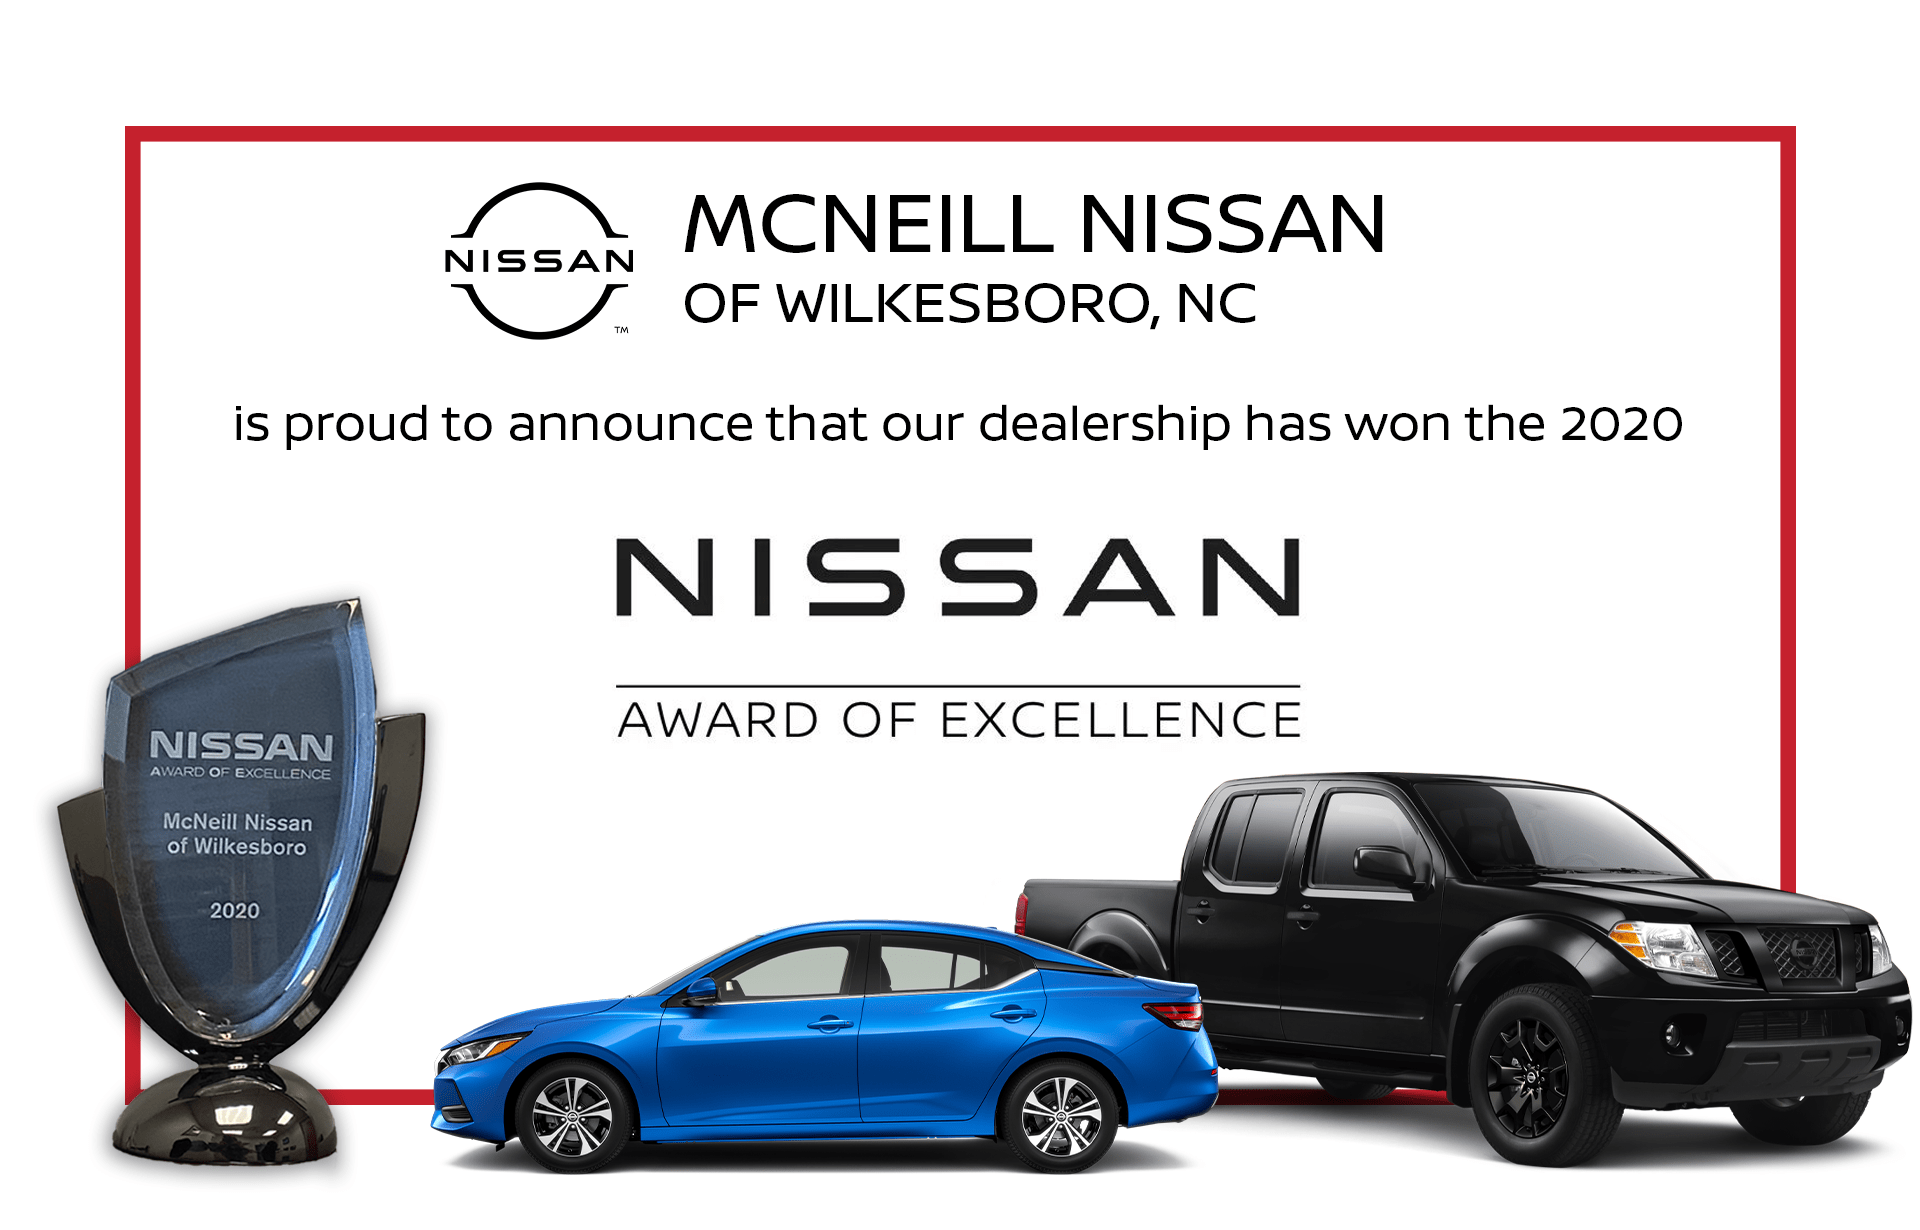 McNeill Nissan of Wilkesboro award of excellence 2020